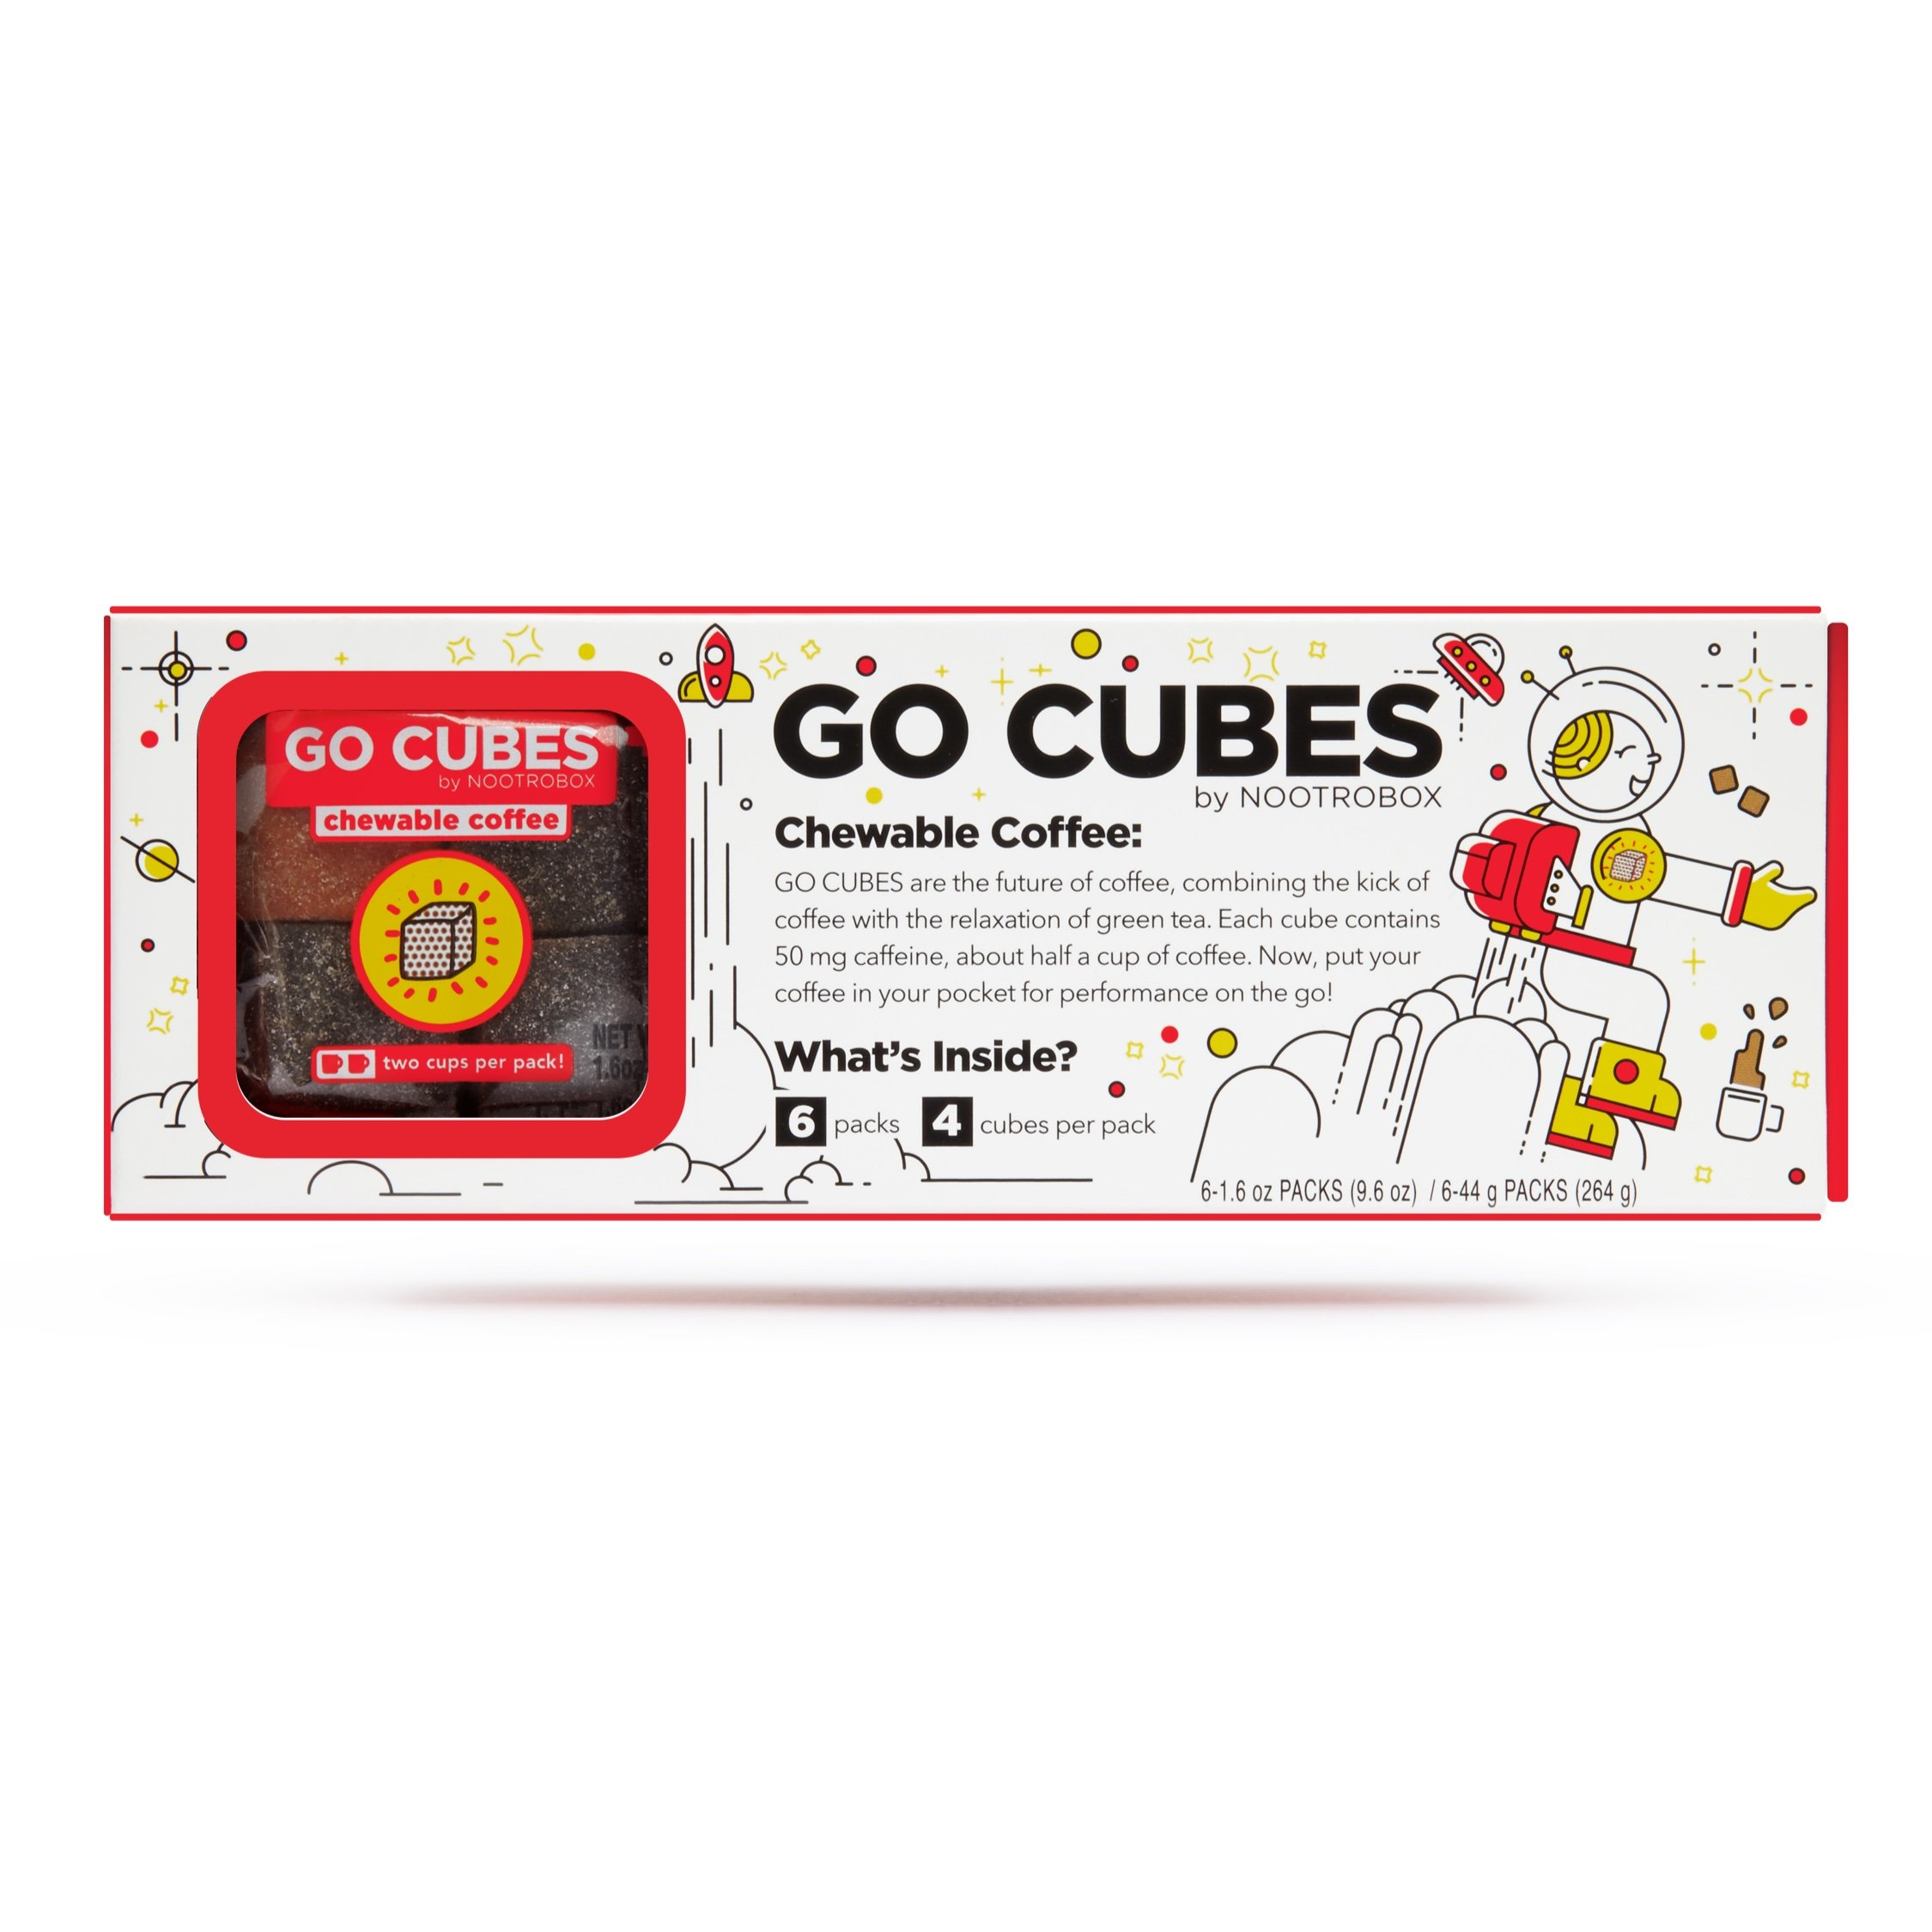 GO CUBES Energy Chews, Assorted Coffee Flavors, 4Count energy chews (6 Pack)